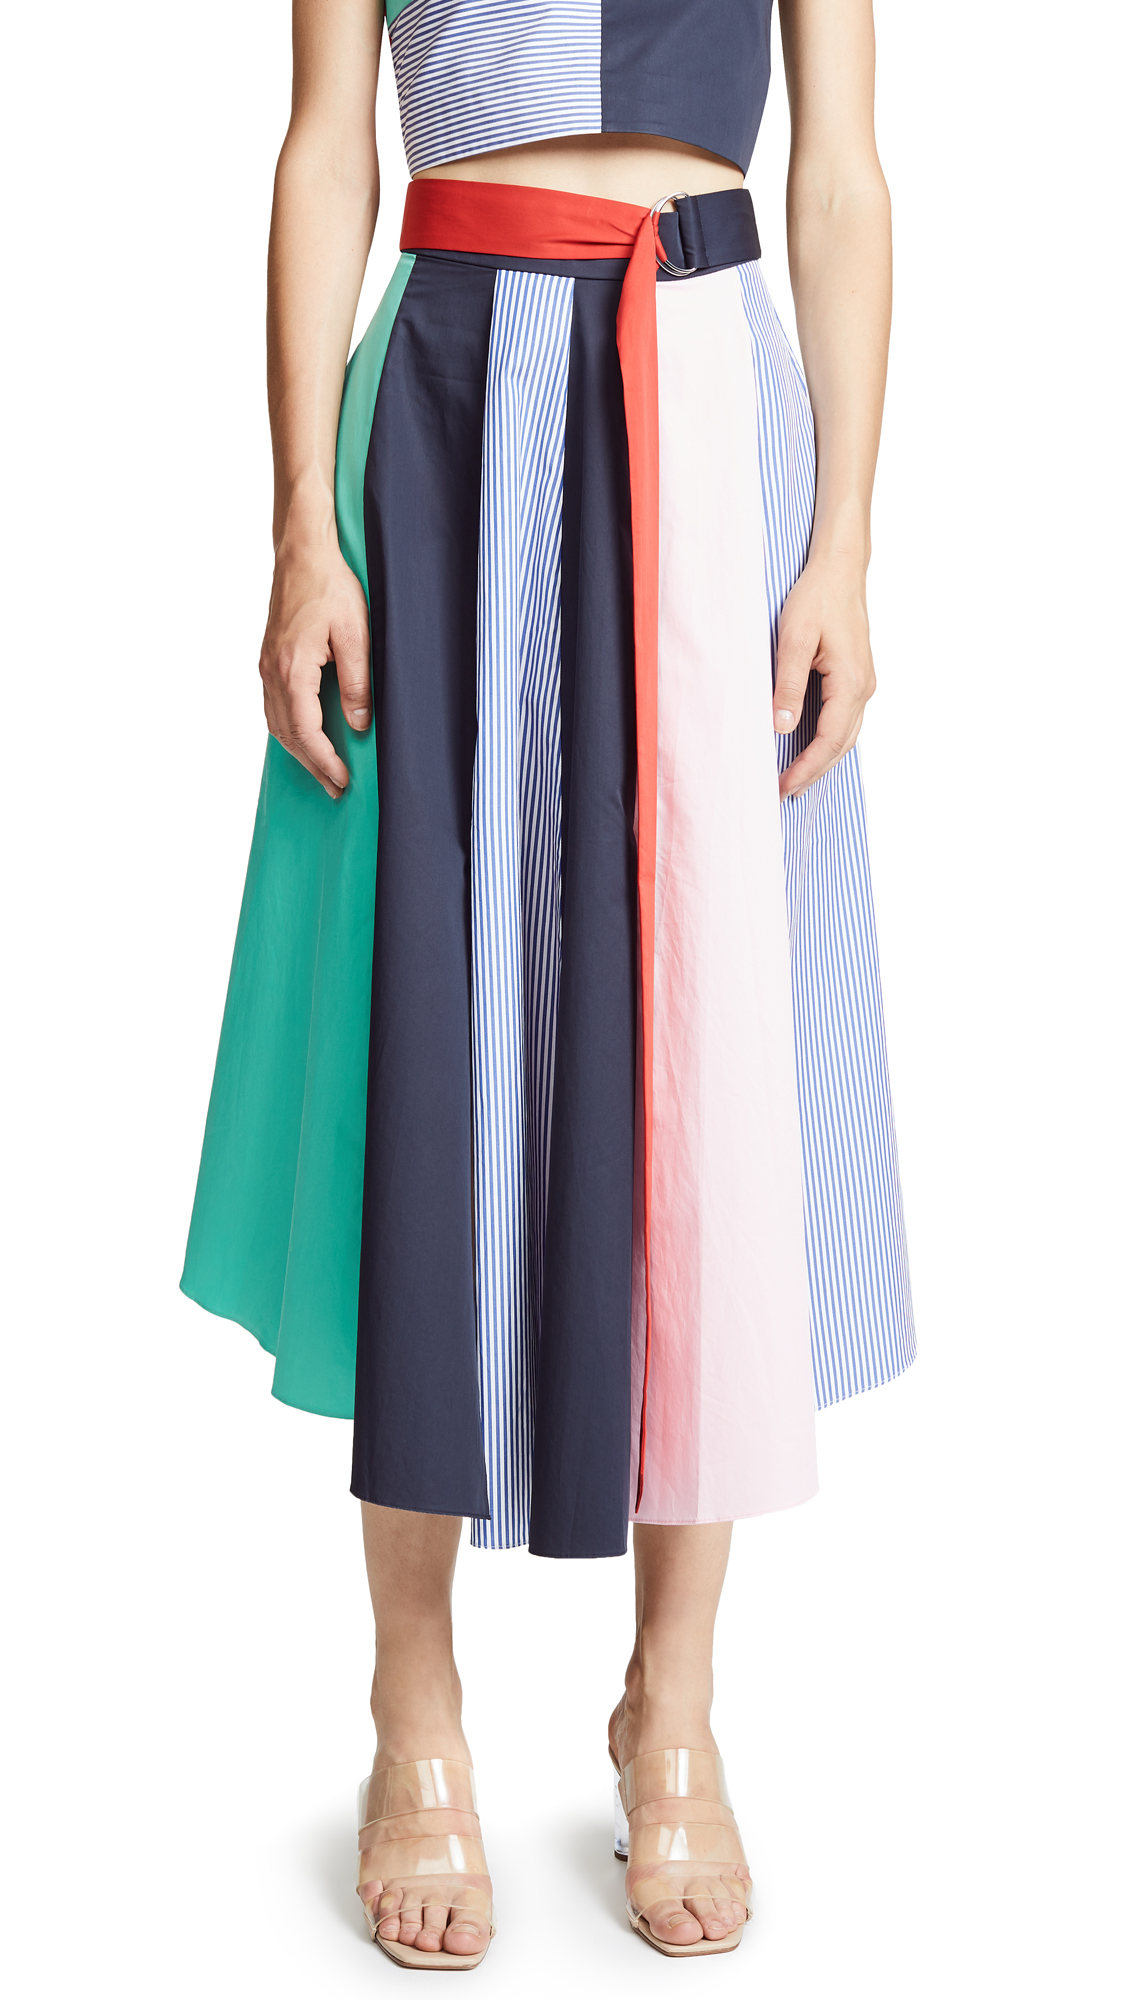 Tibi Tie Skirt In Mint Multi